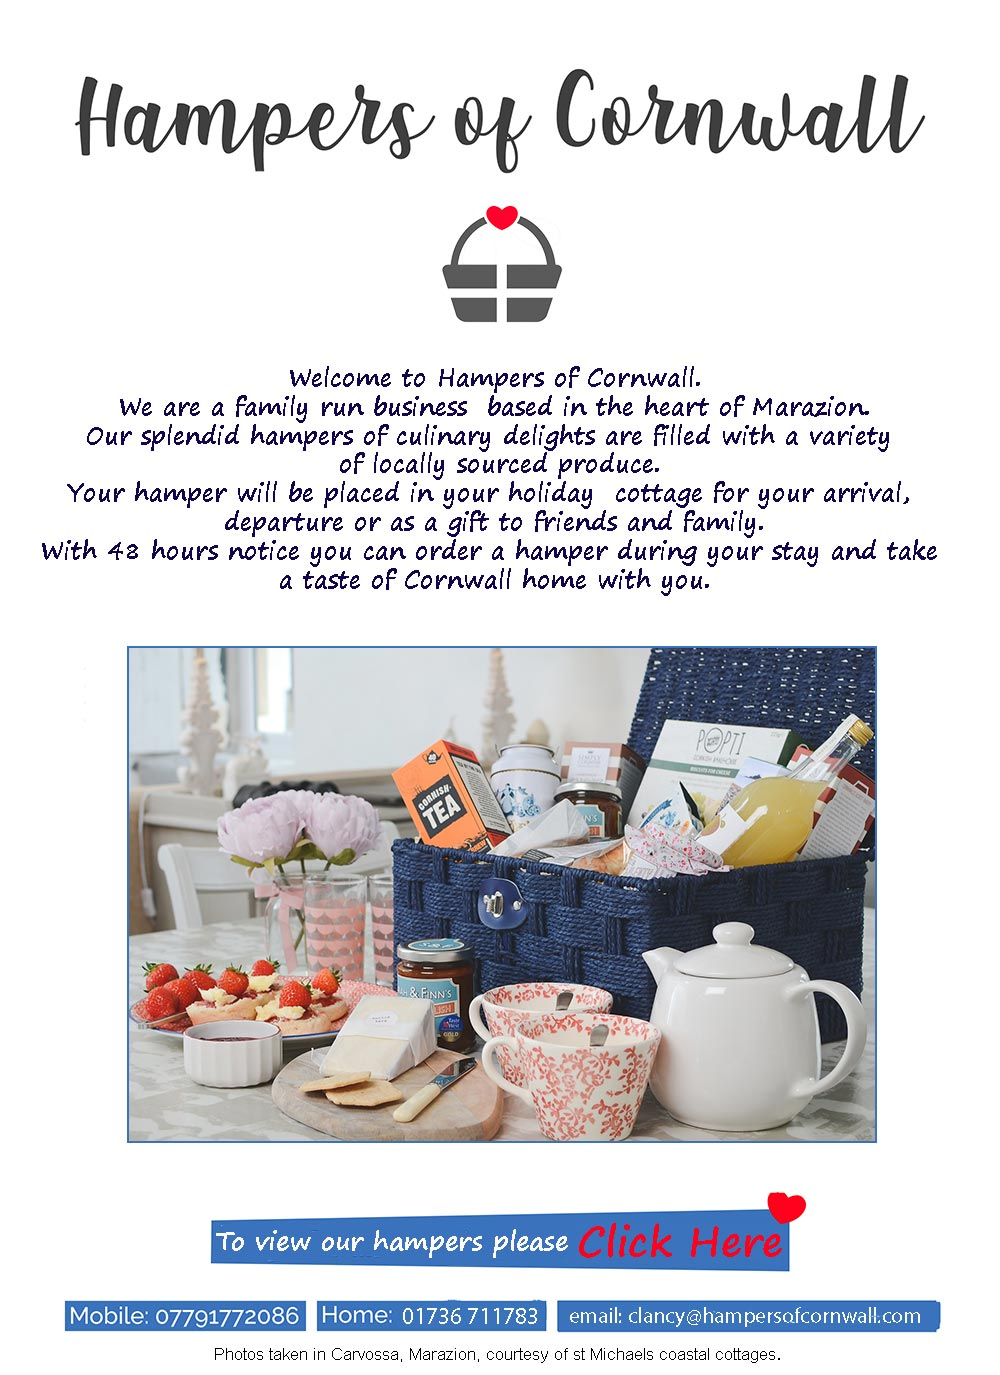 Treat yourself to a Cornish Hamper for your arrival or as a gift for friends. www.hampersofcornwall.com